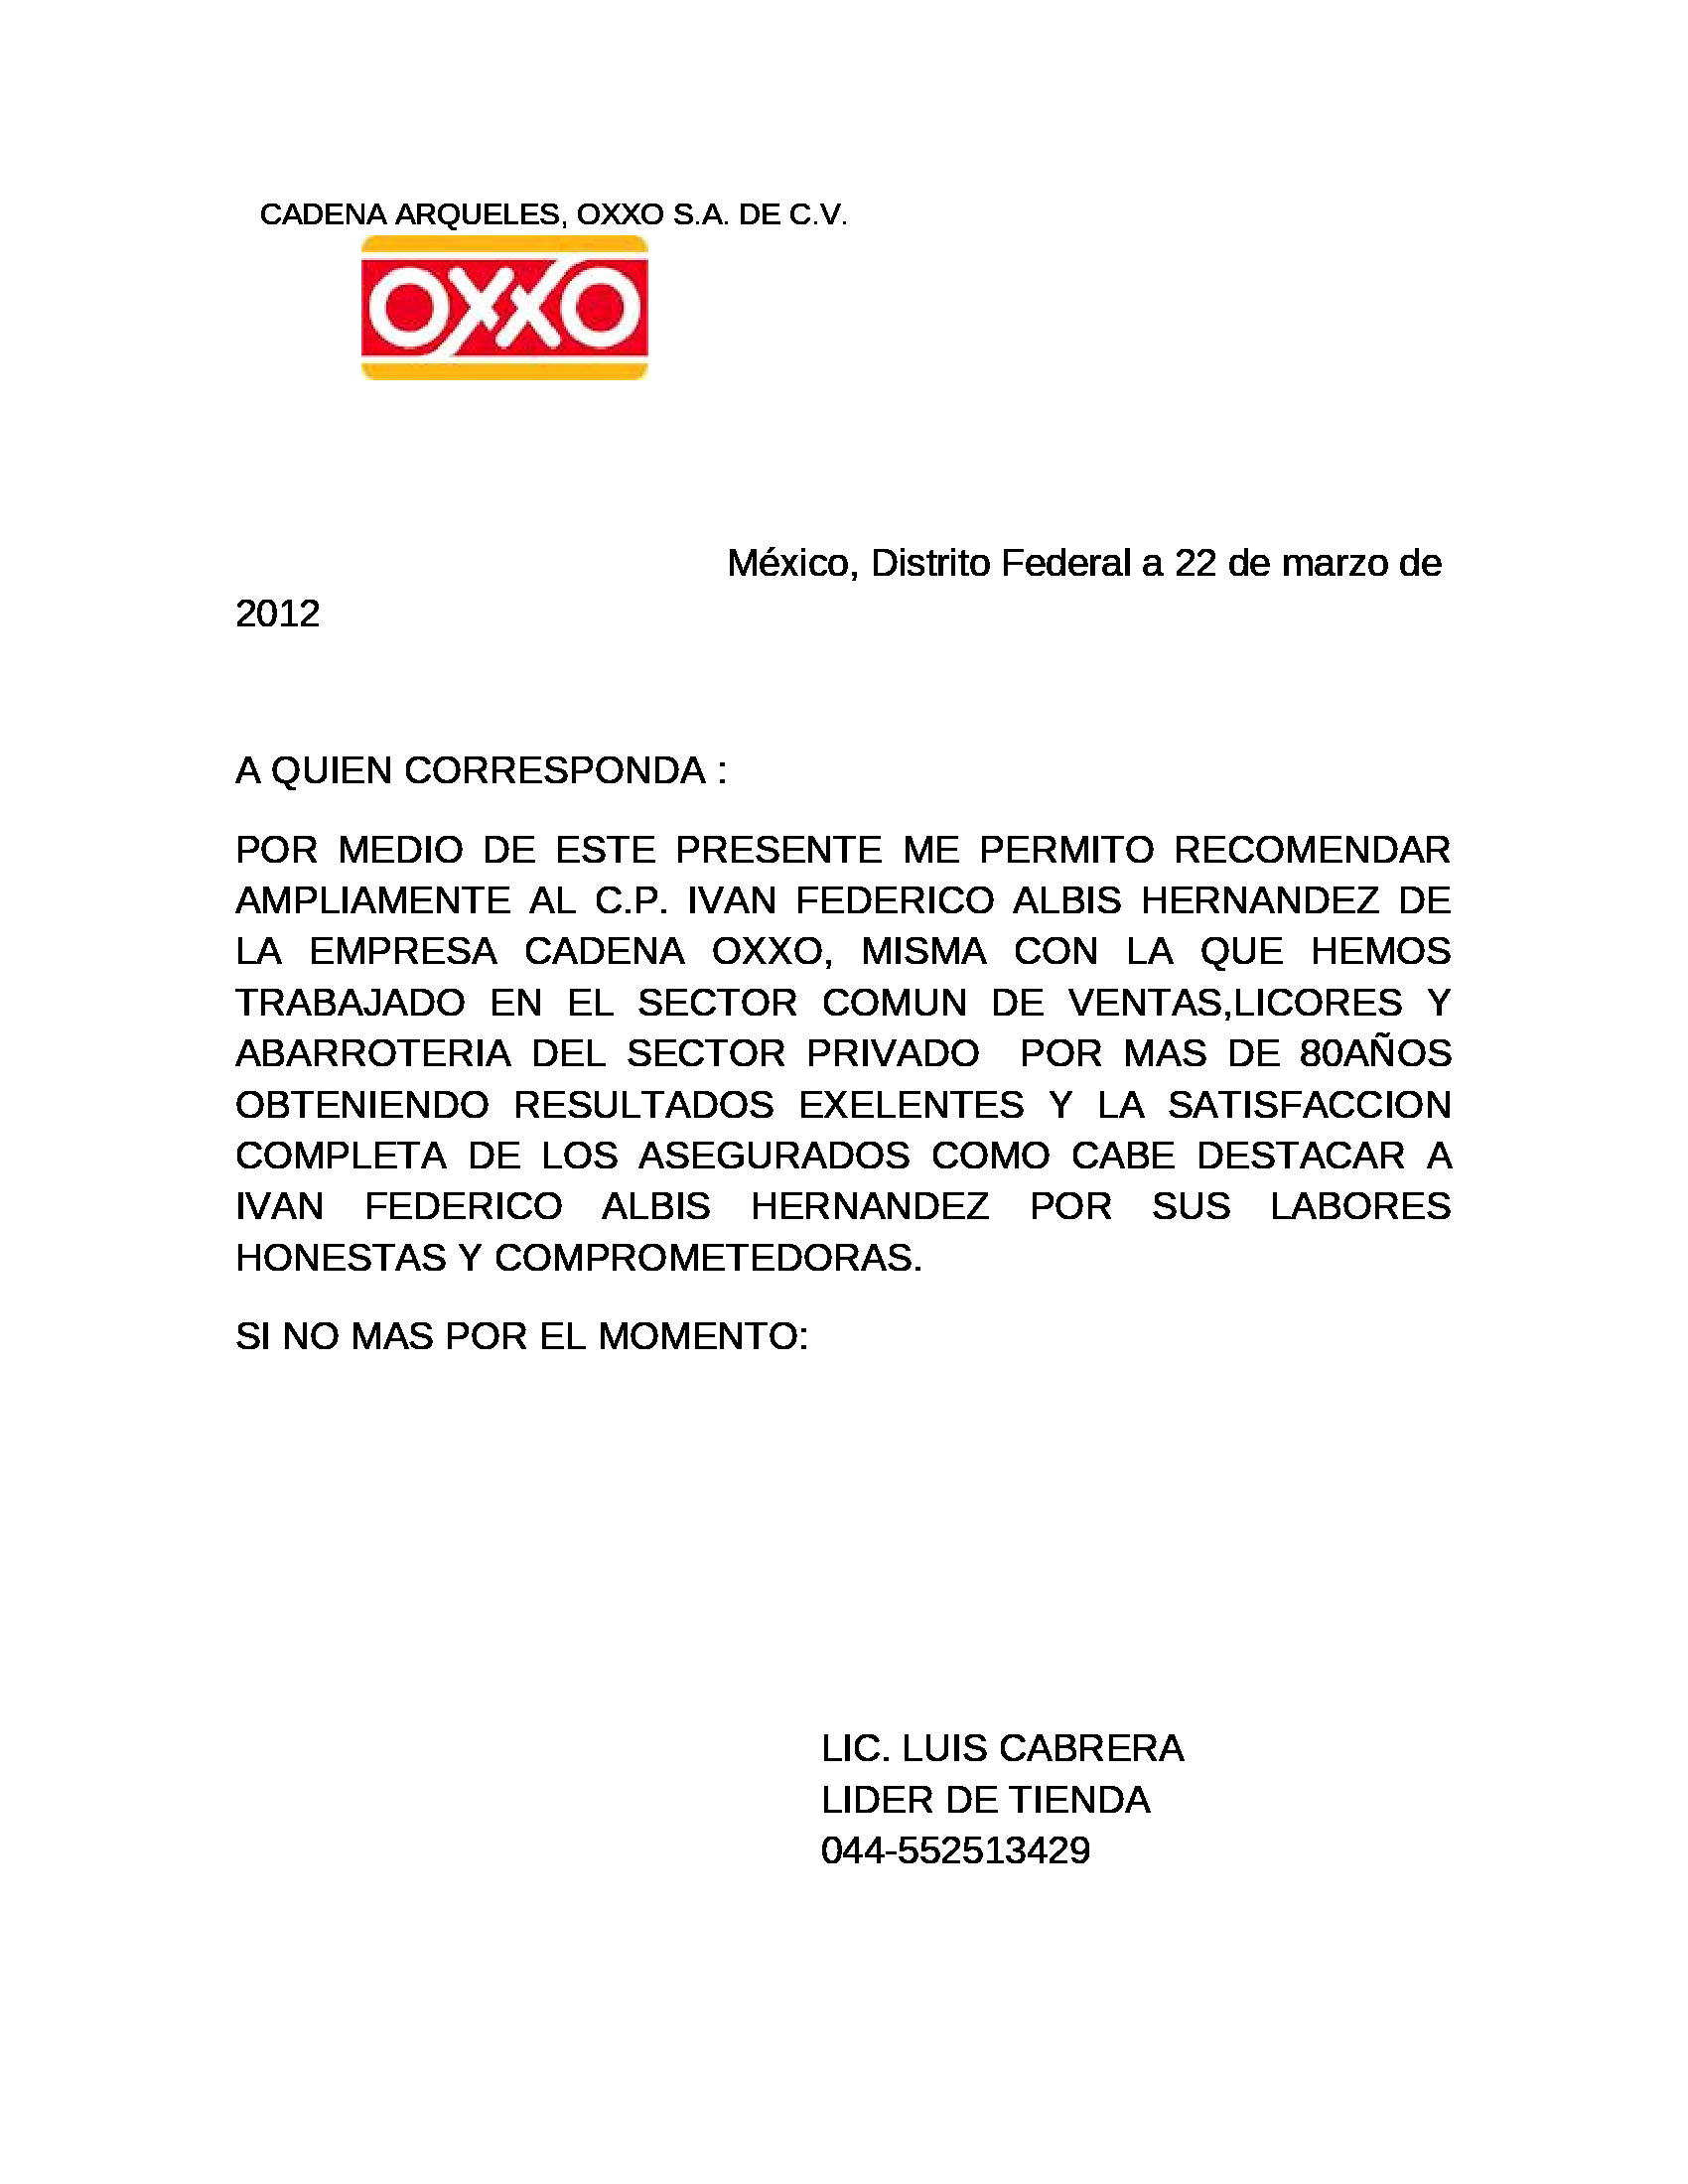 Formato Cartas De Recomendacion Laboral Unique Carta De Re Endacion Laboral Dokumen Tips